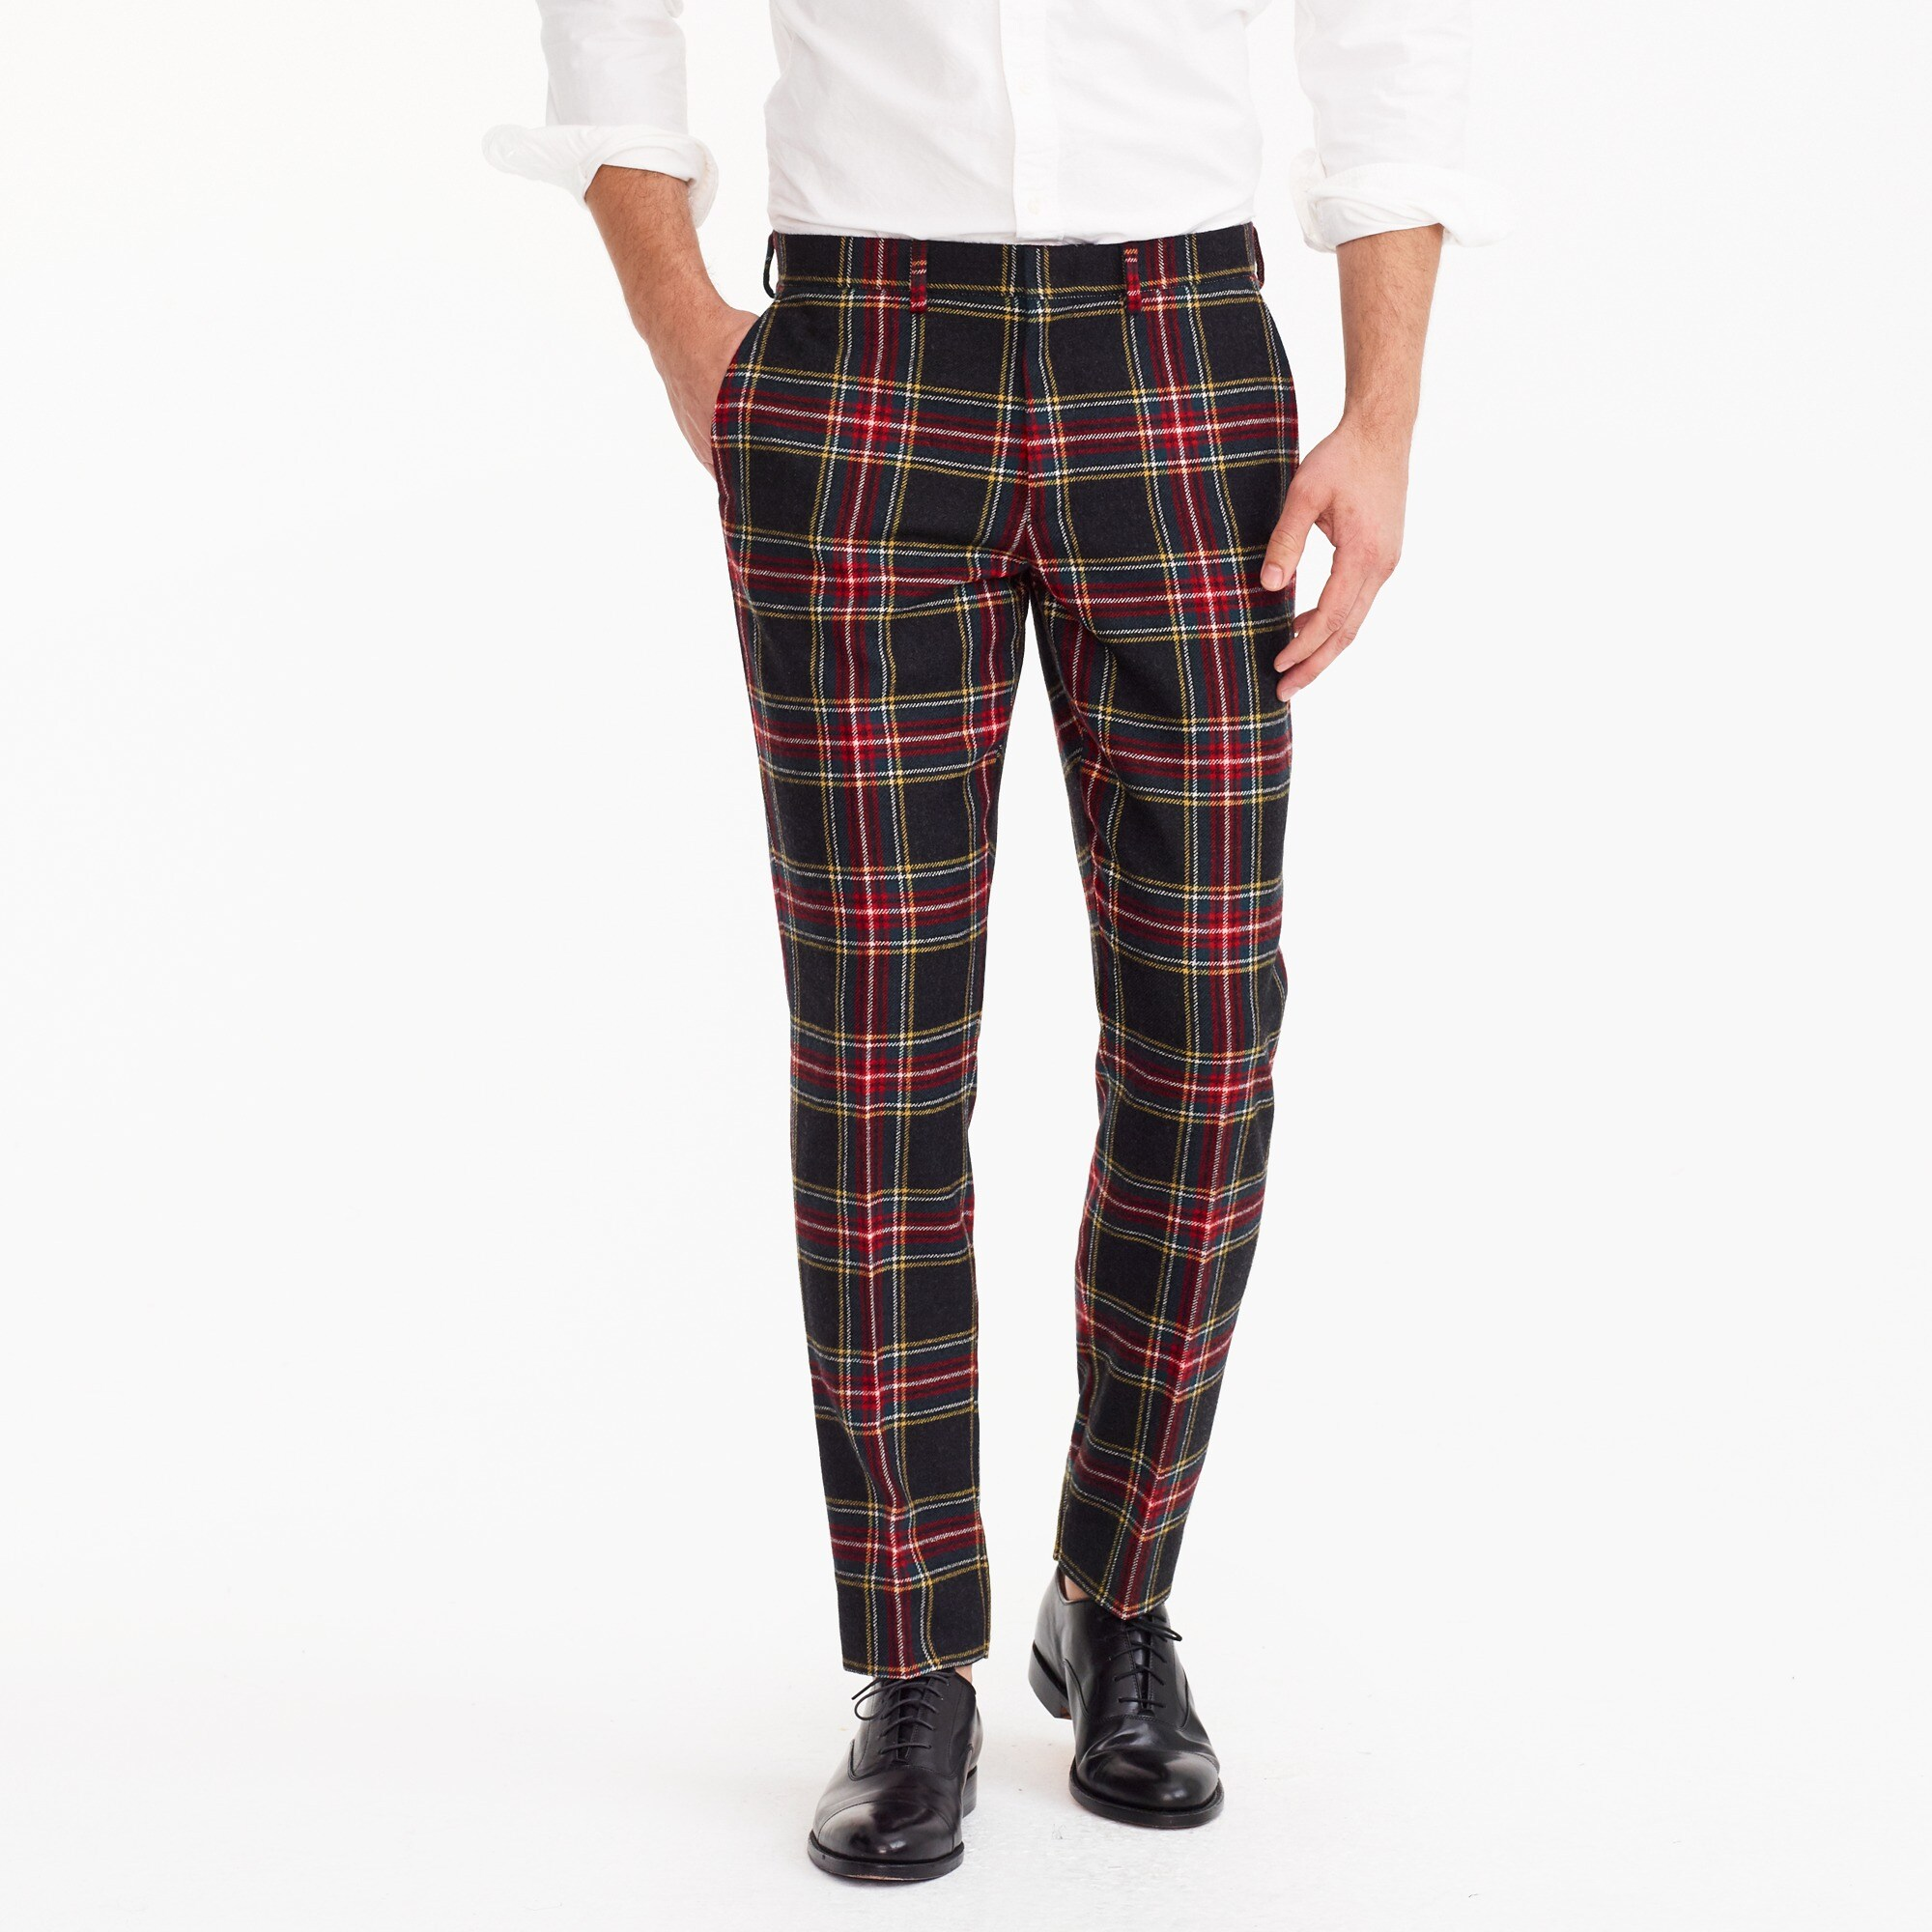 Ludlow Slim-fit pant in wool tartan men pants c